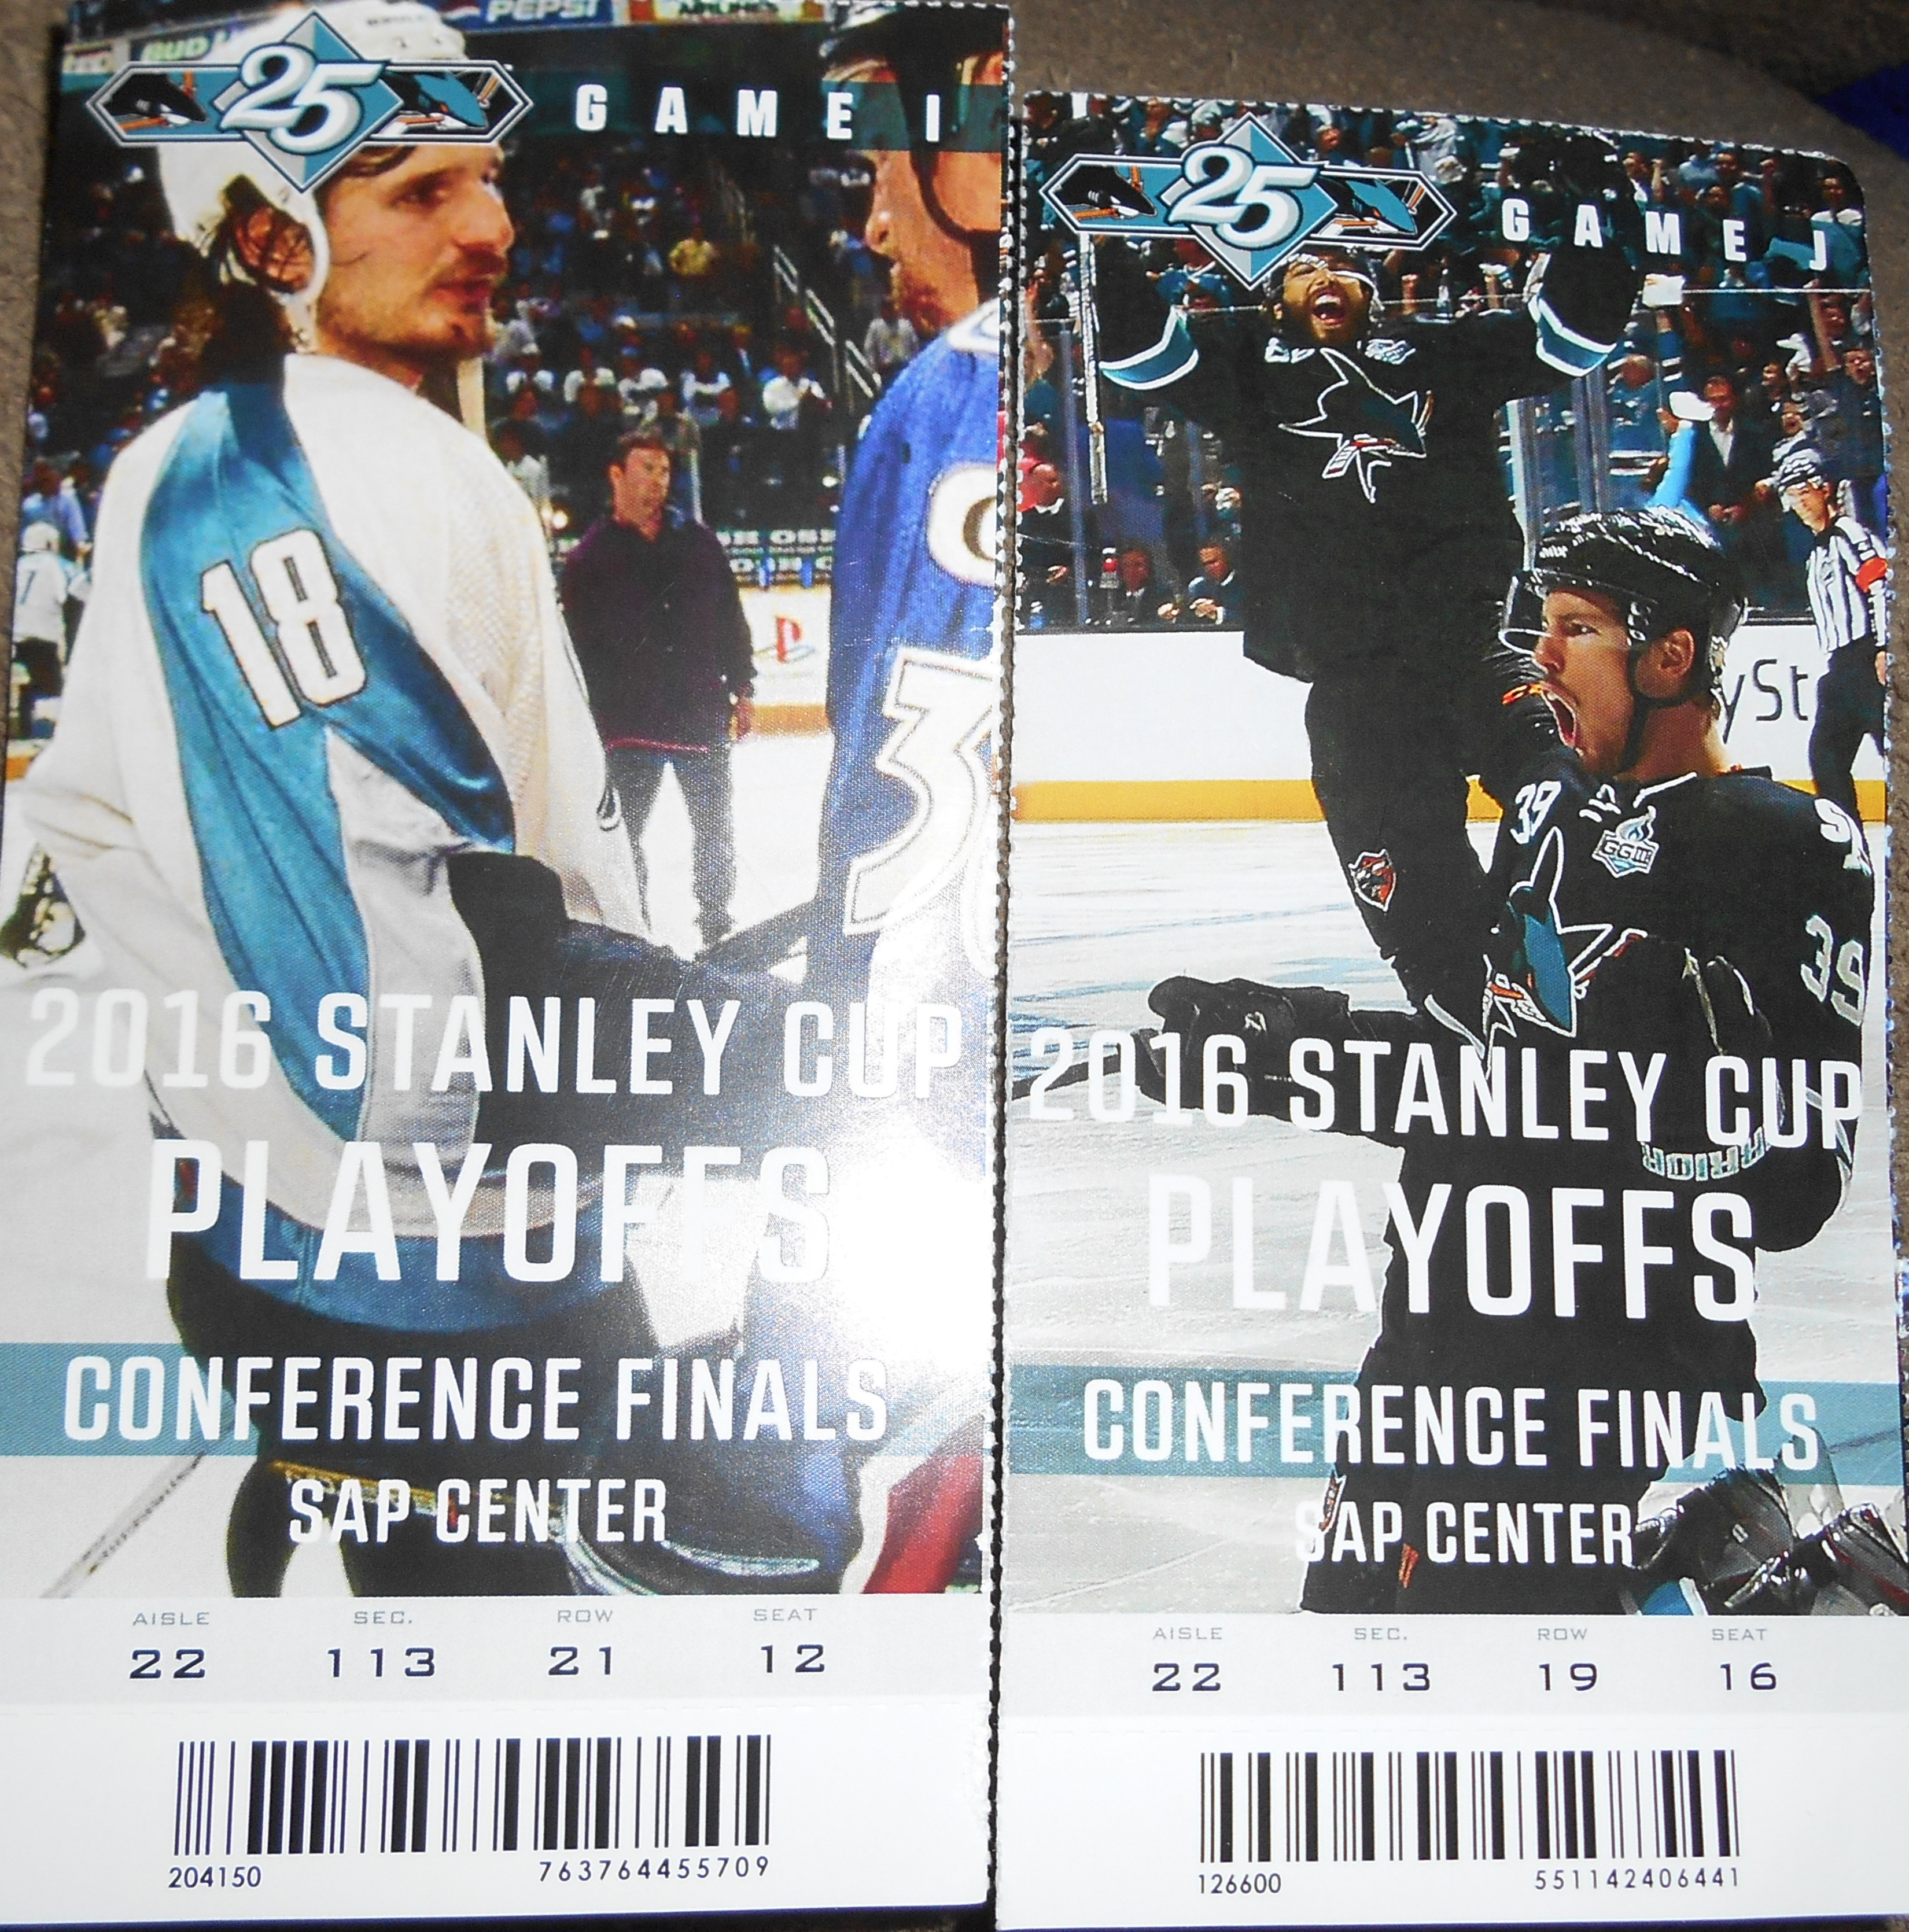 Tickets for games 3 and 4 in San Jose